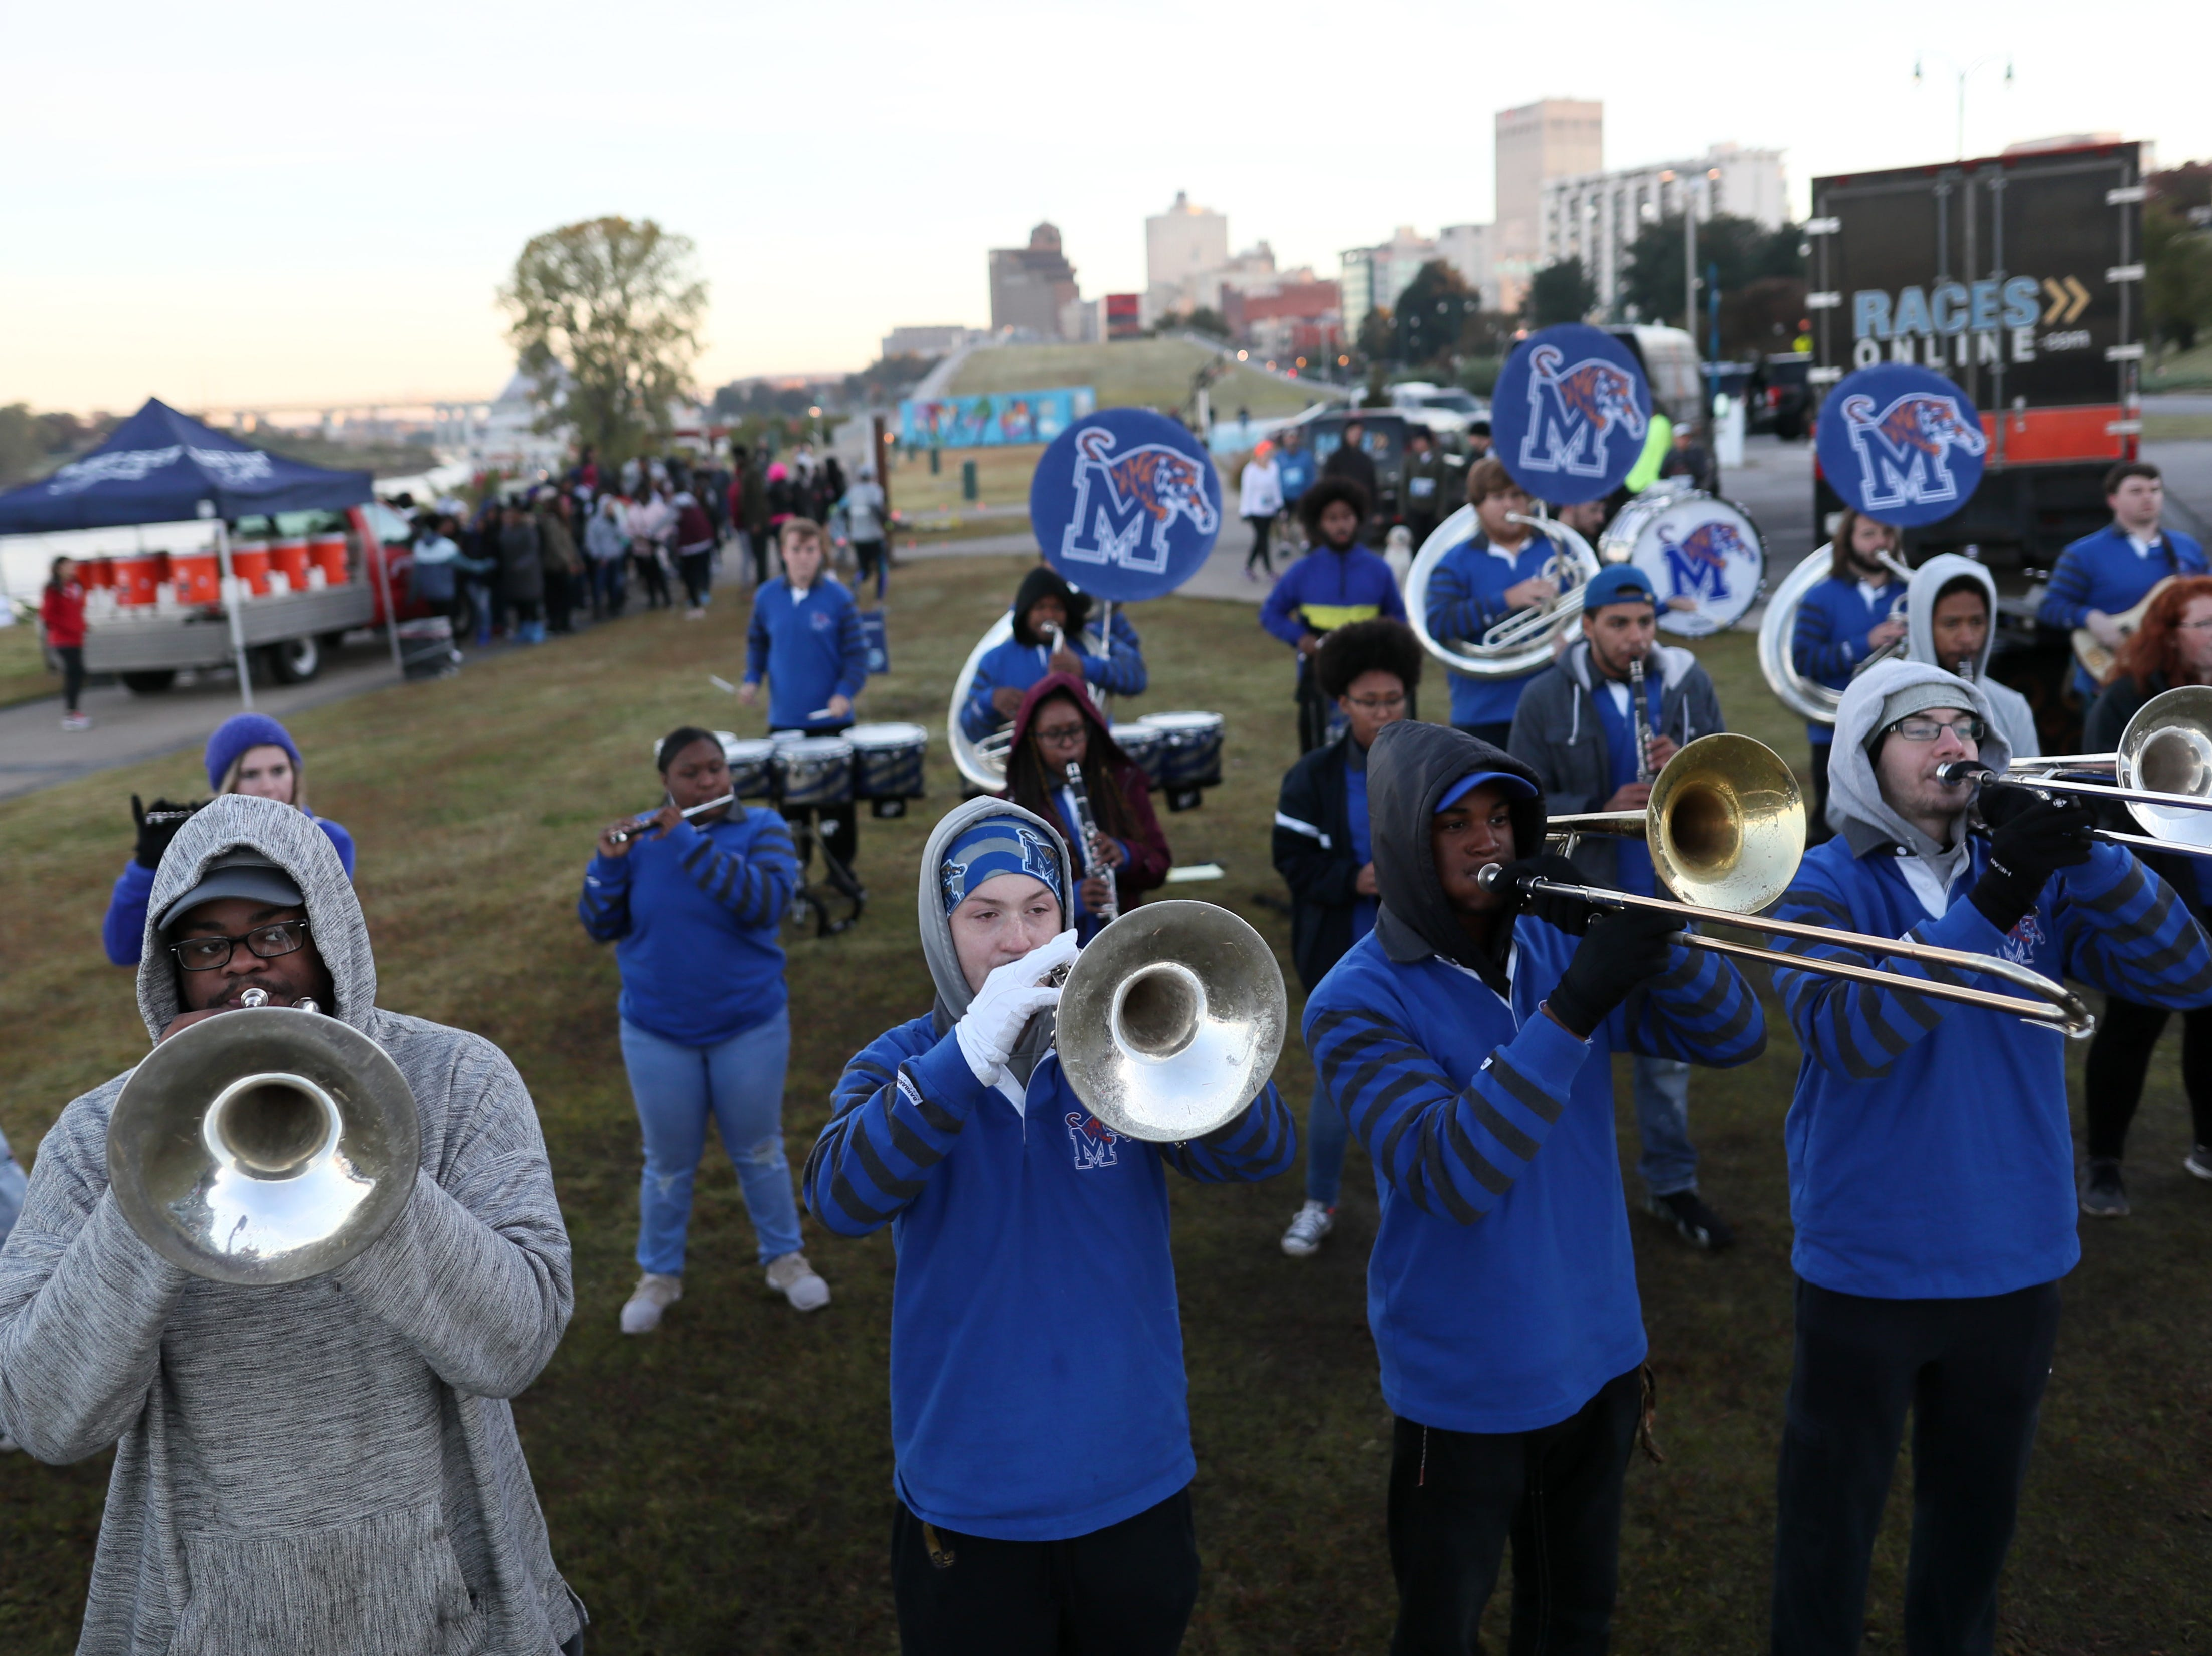 Mighty Sound of the South plays to kick things off for the Big River Crossing Half-Marathon and 5K run downtown Memphis Saturday, November 3, 2018.